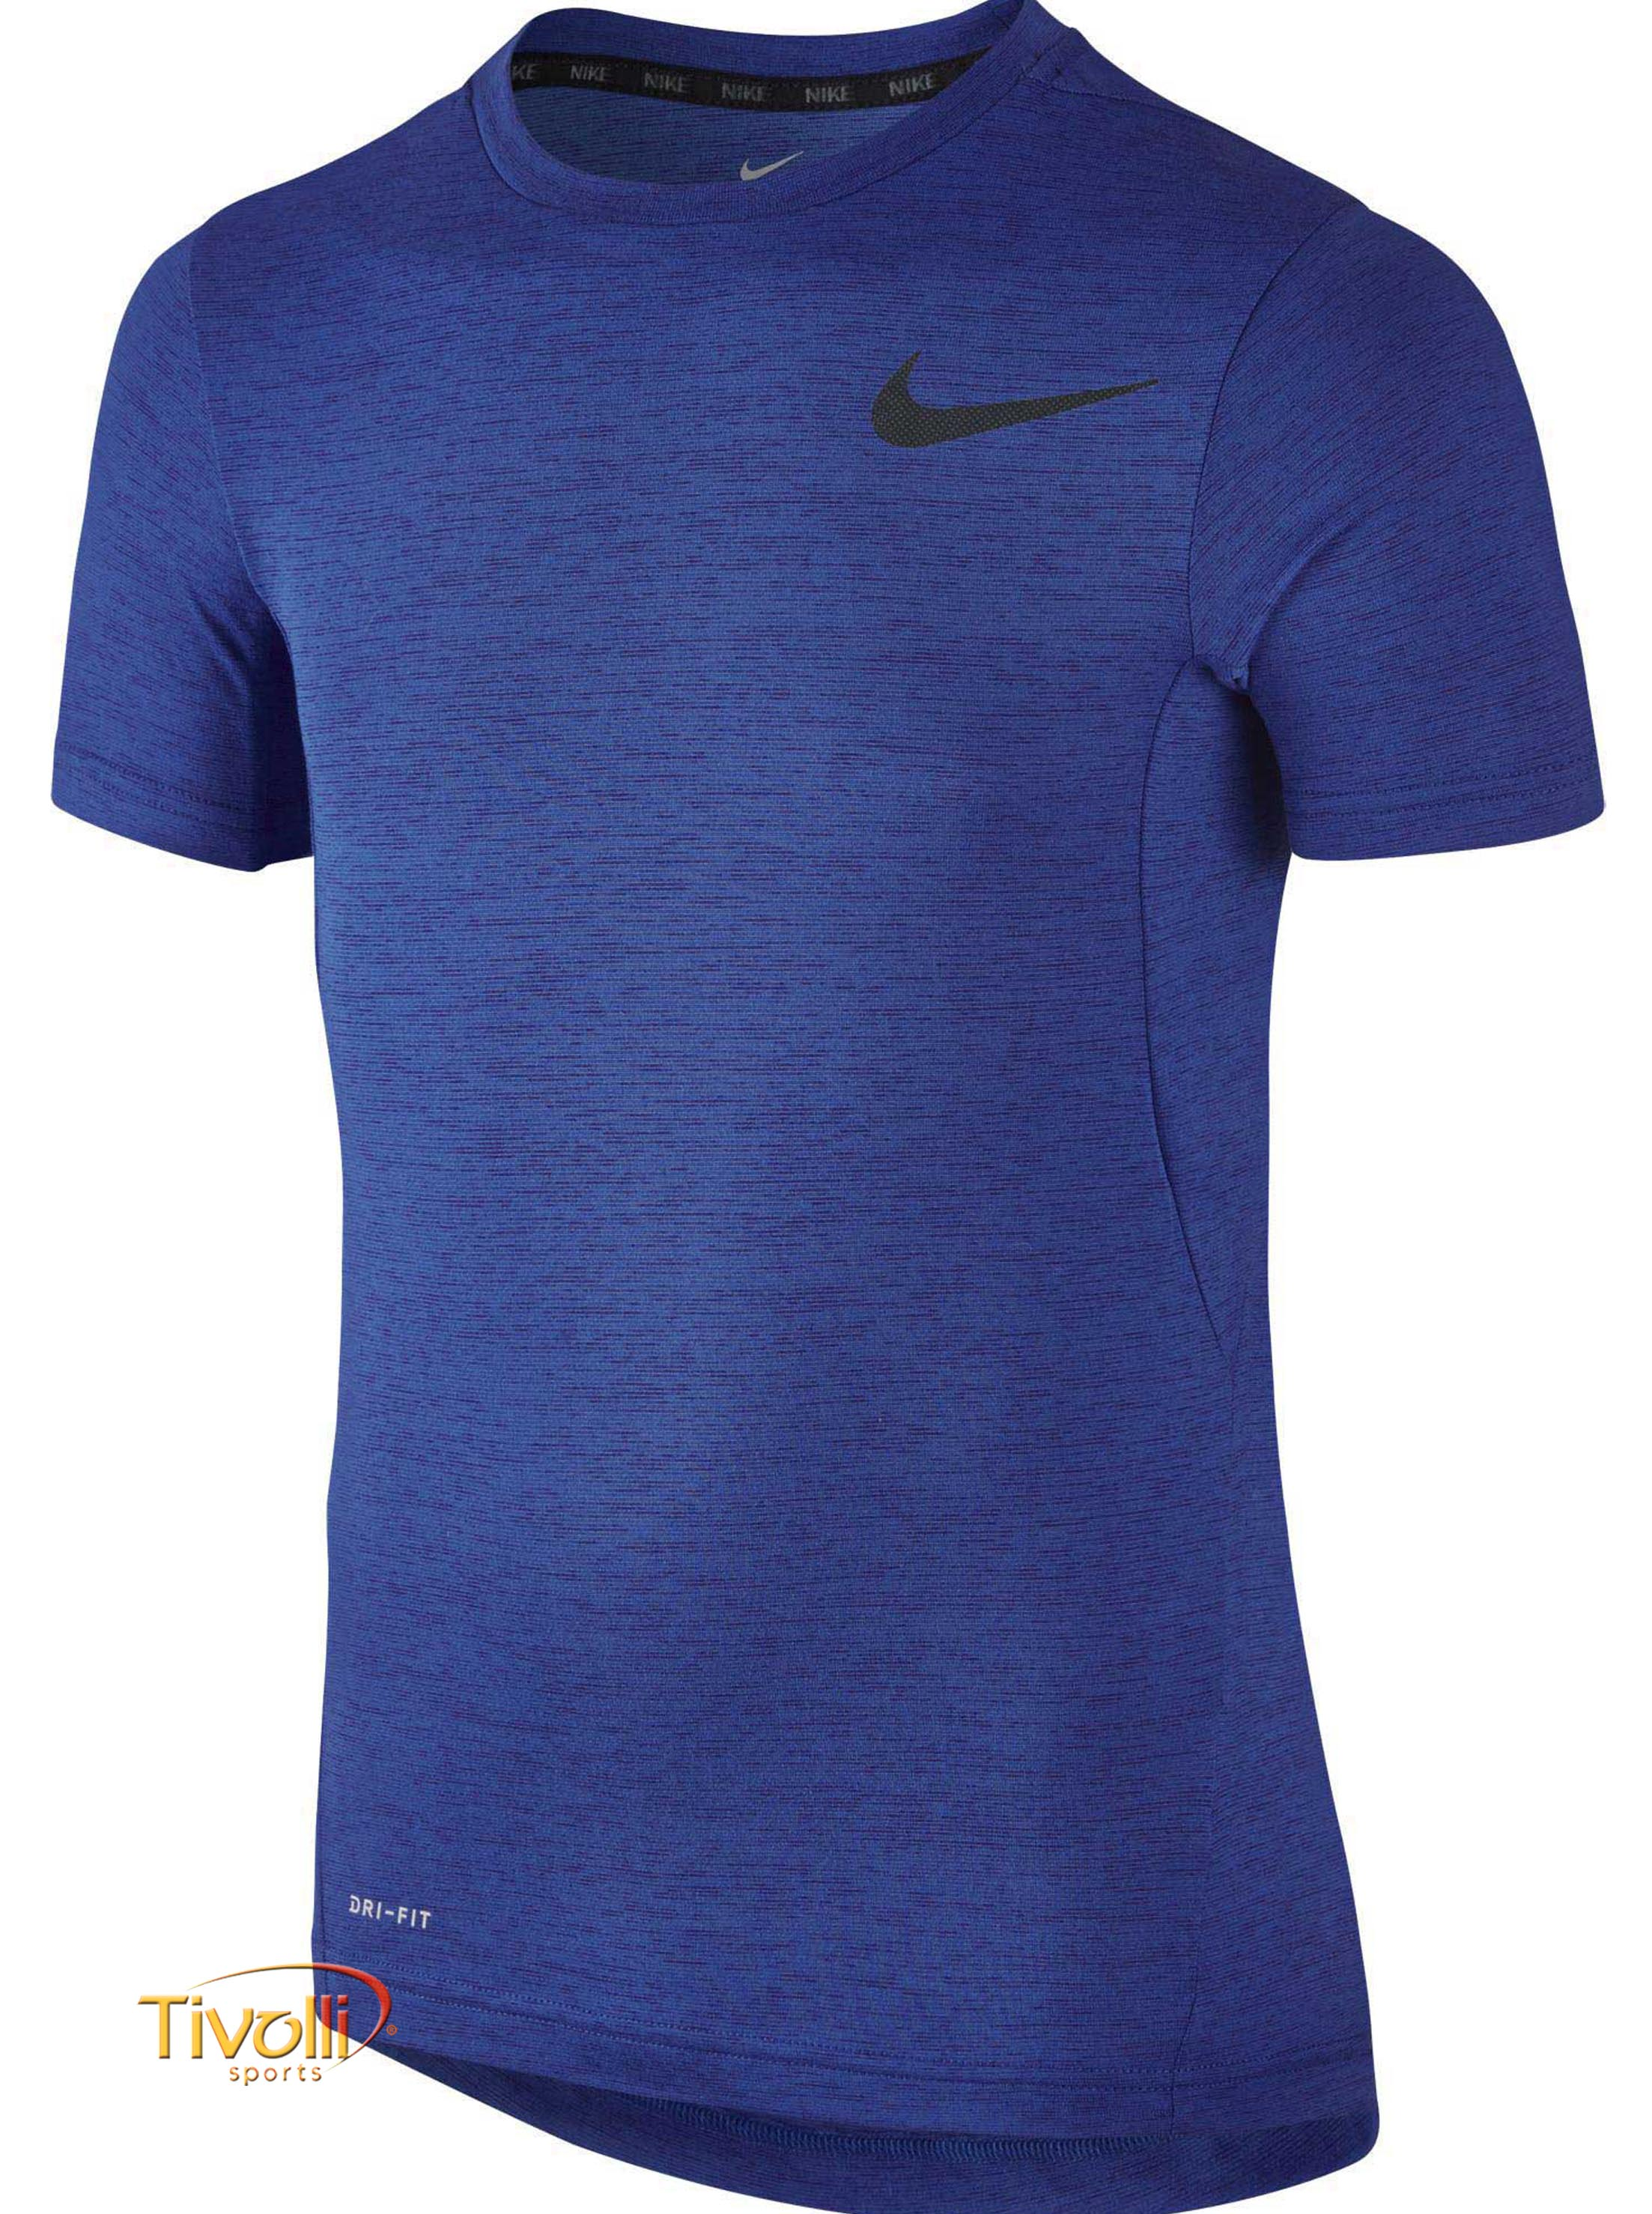 Camiseta Nike Dri-Fit Training Top Infantil